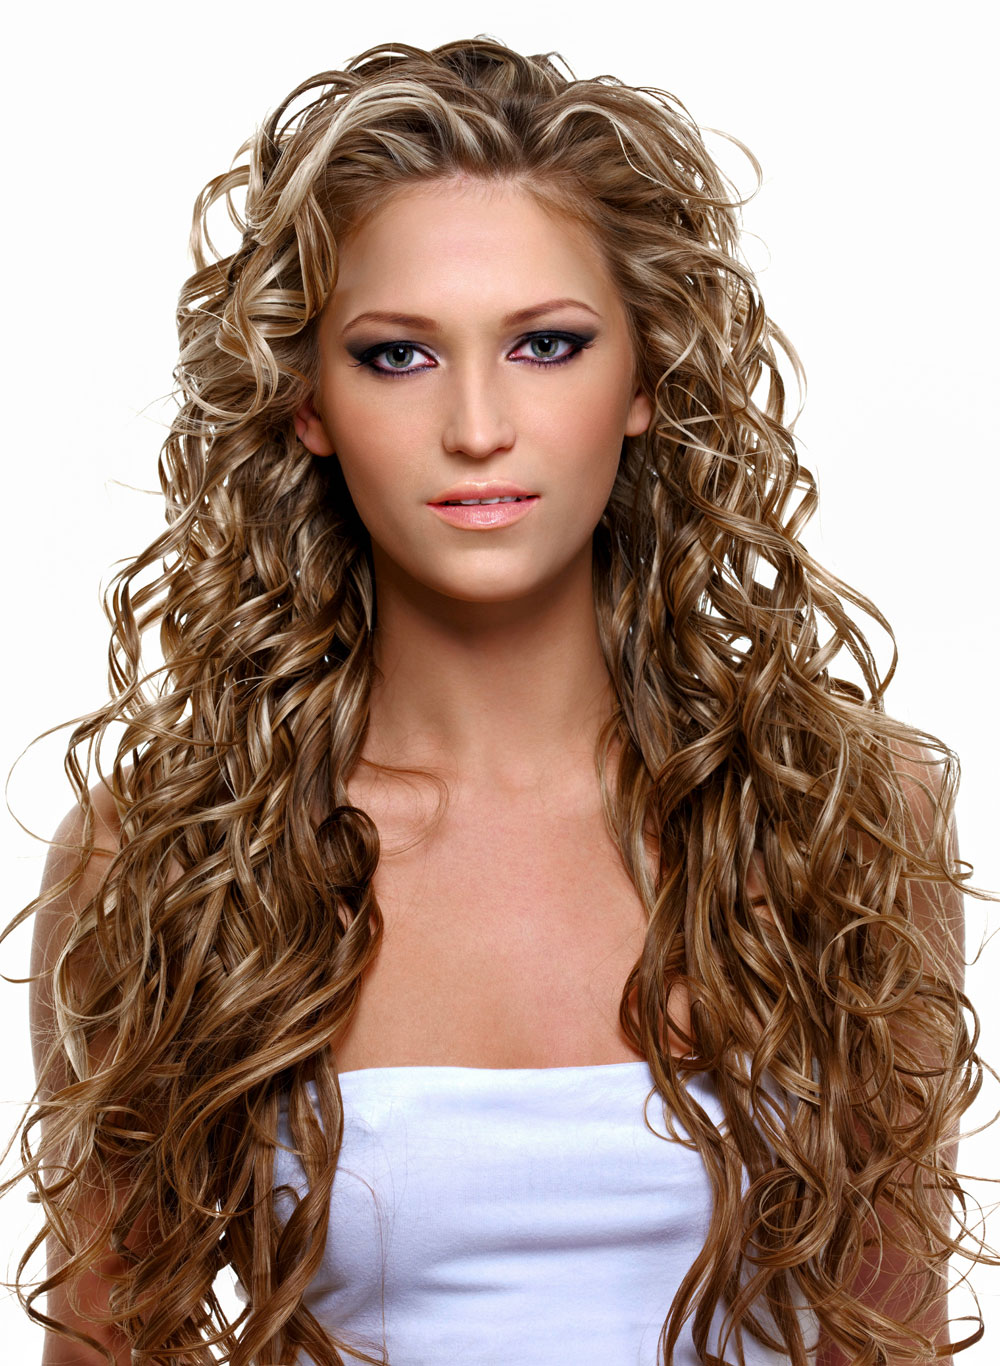 Frisuren Lange Haare Locken Blond Locken Frisuren Fur Lockiges